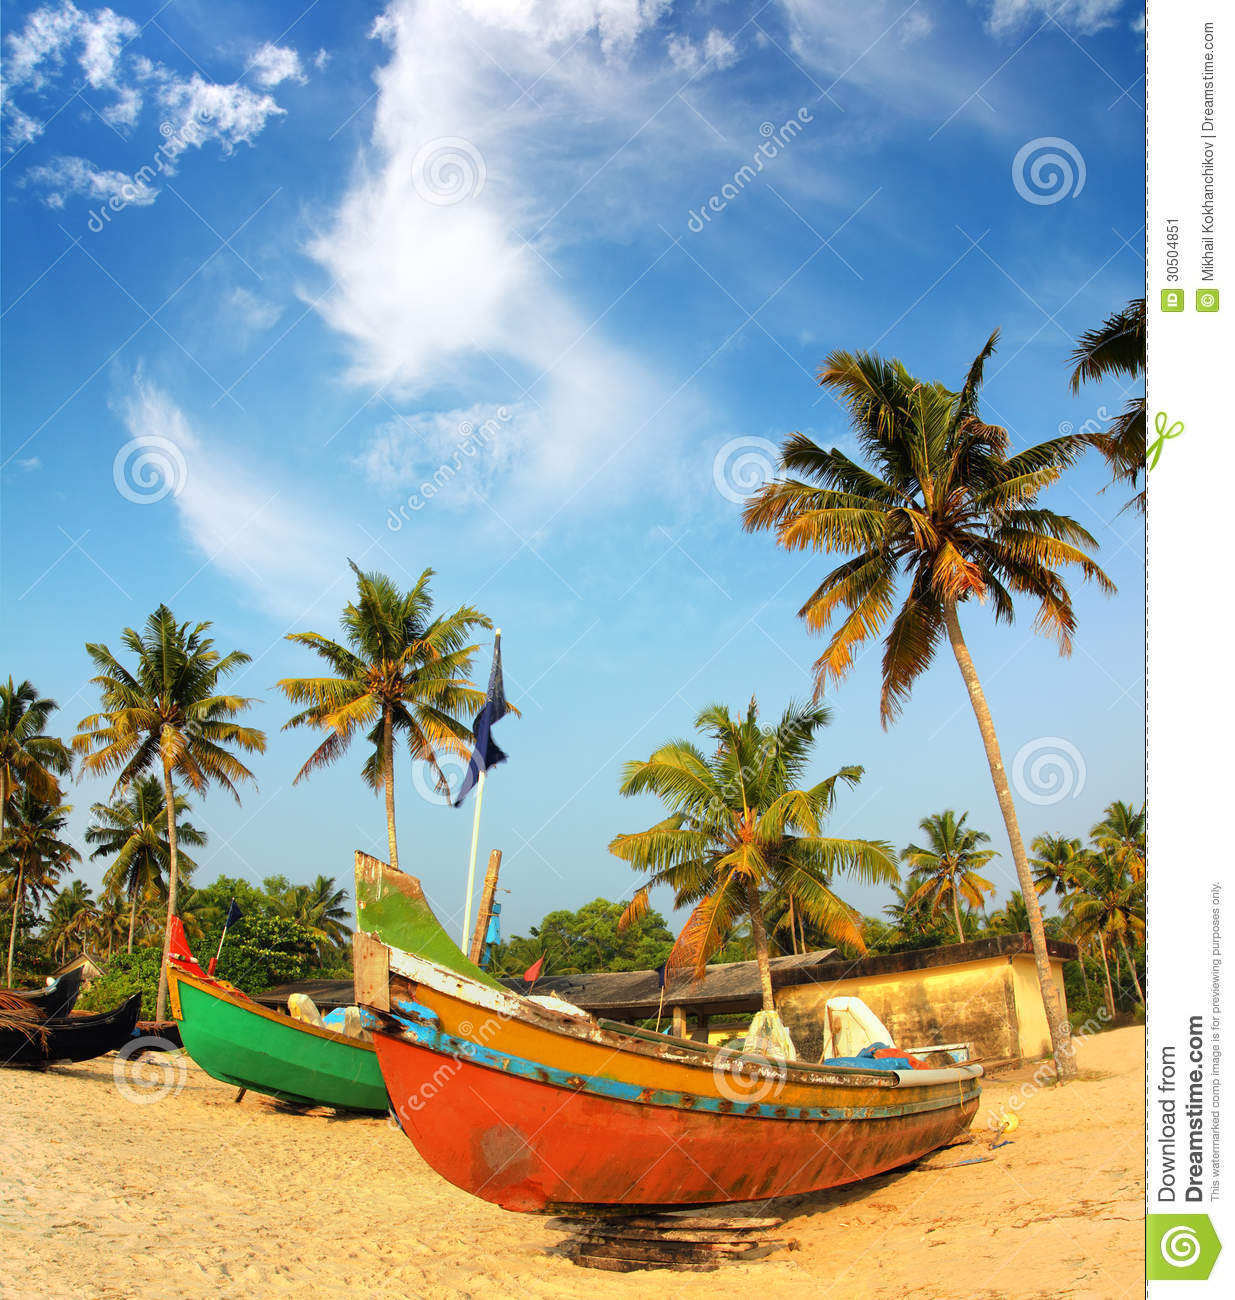 Old Fishing Boats On Beach: Old Fishing Boats On Beach In India Stock Image